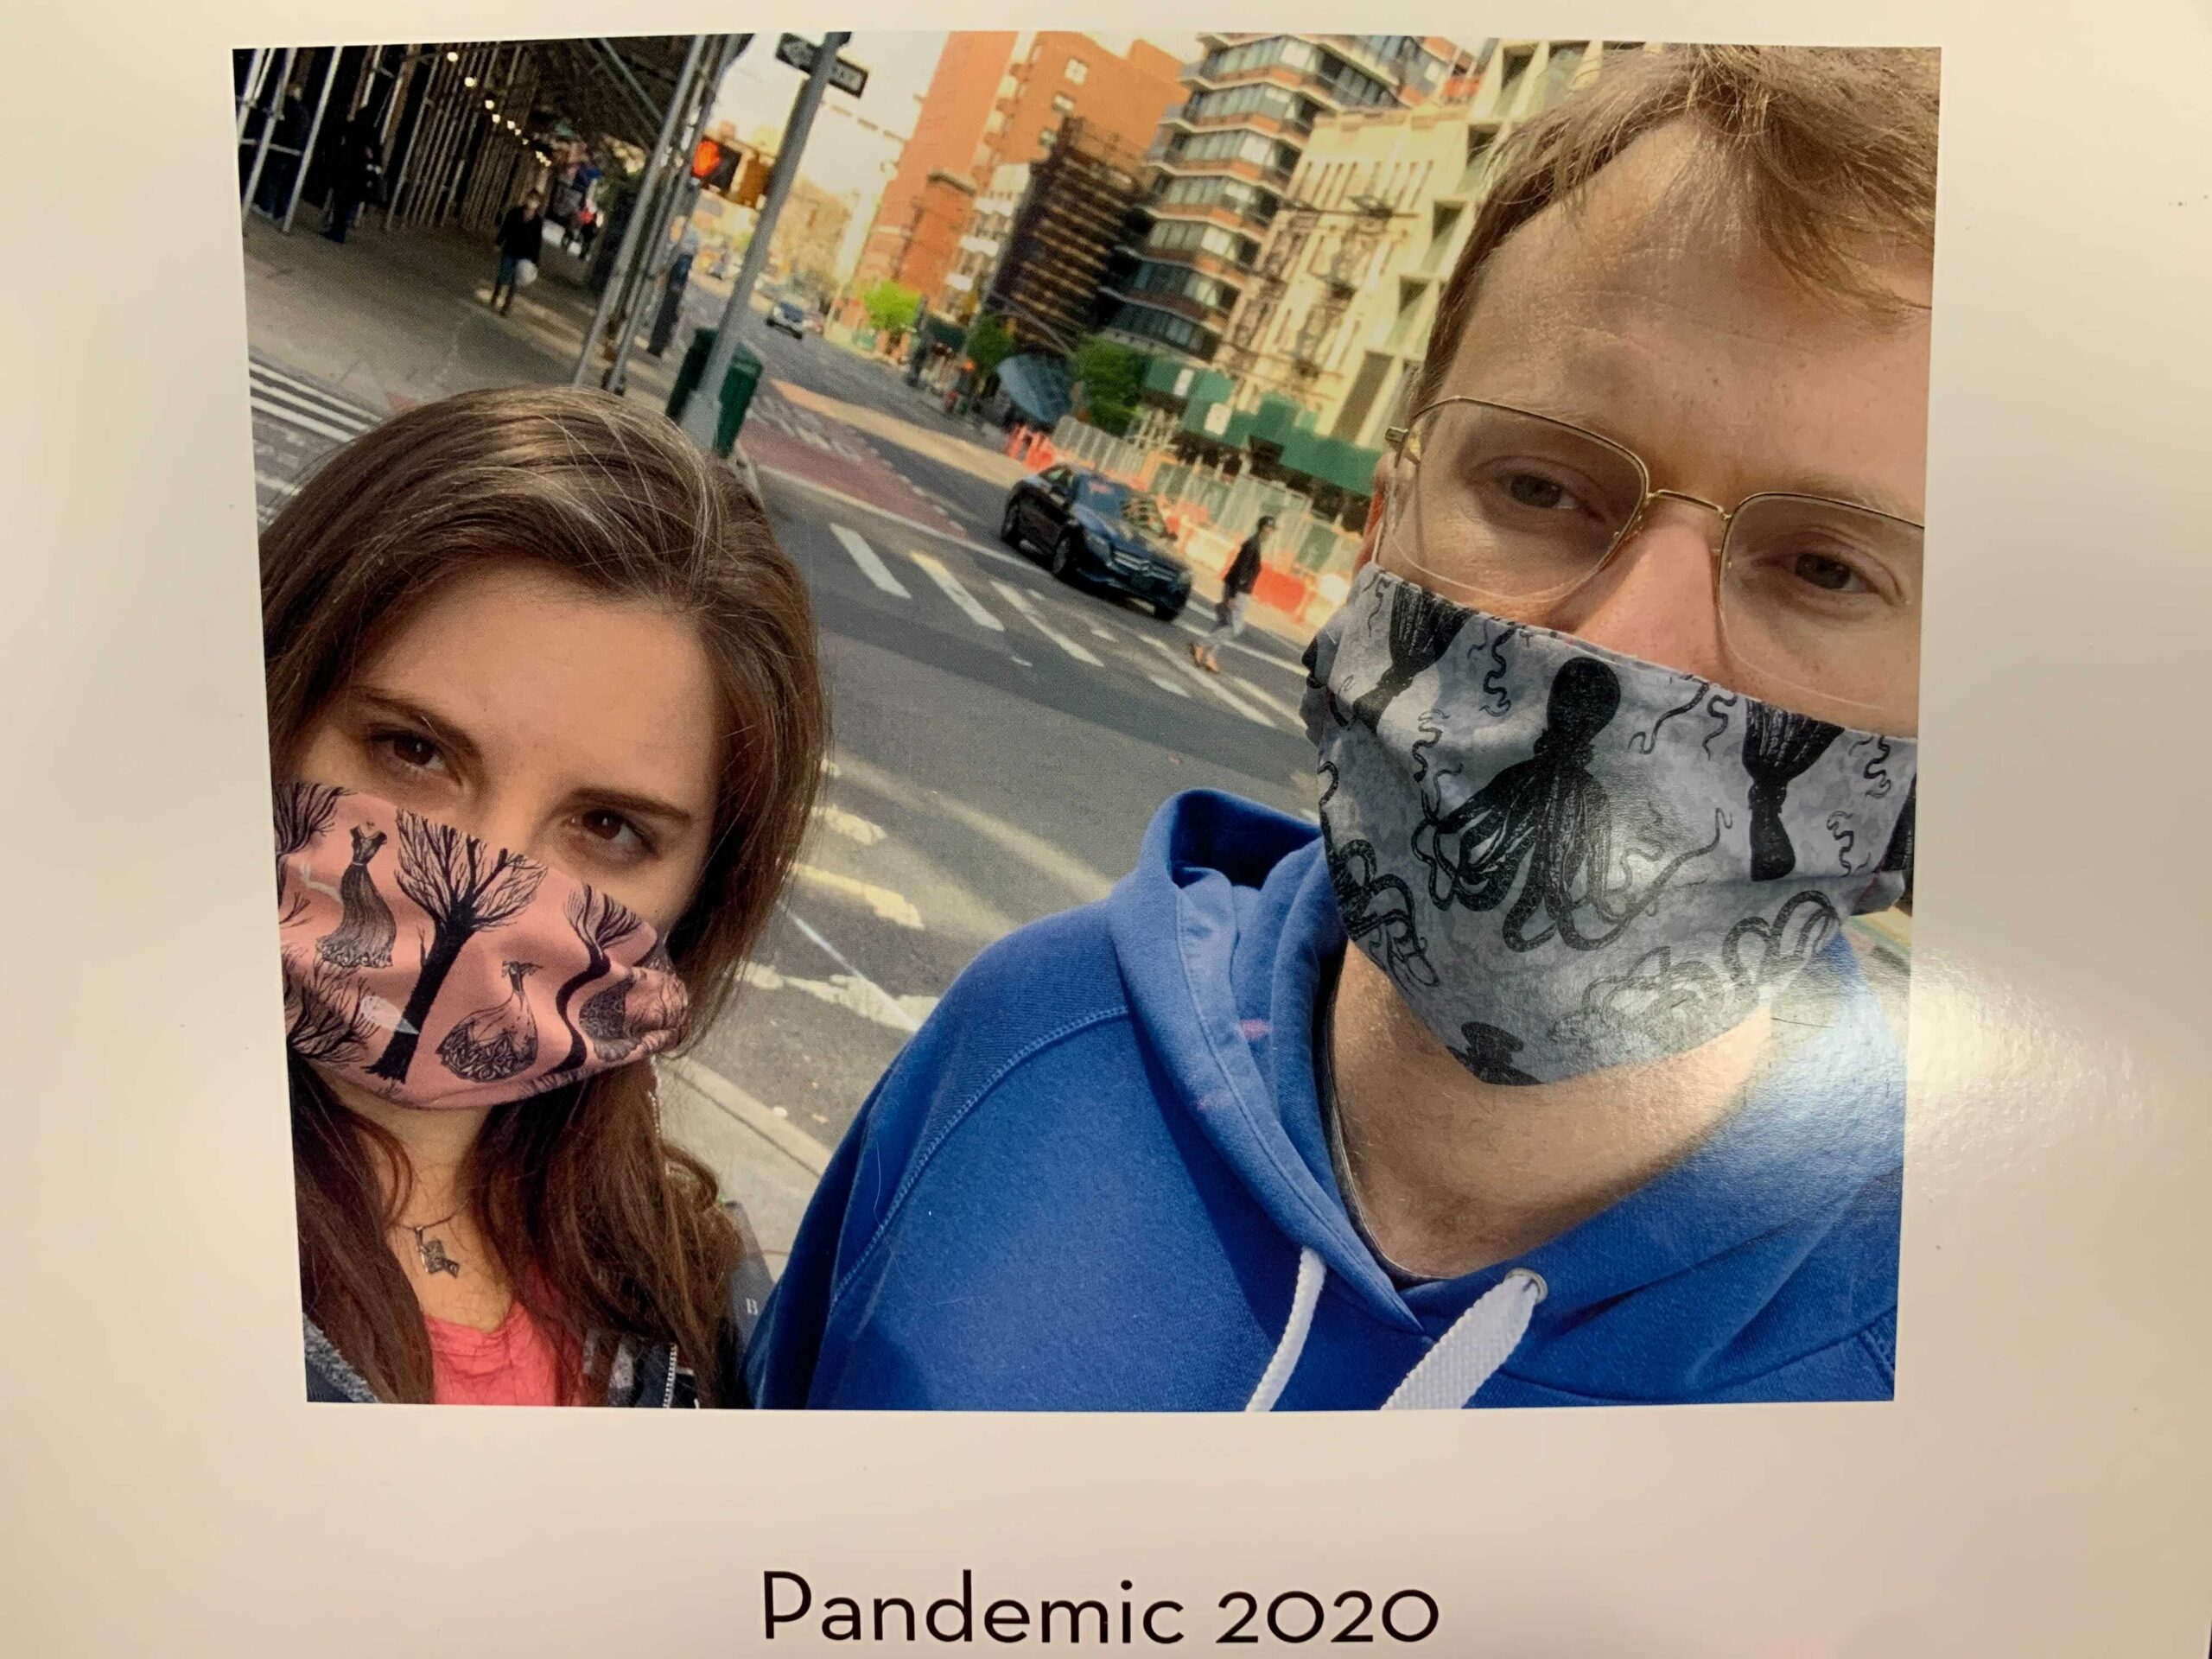 Nikki Main and her fiancé Nicholas on an album of photos in which Main documented their pandemic experience over the last year. [Photo courtesy of Nikki Main]